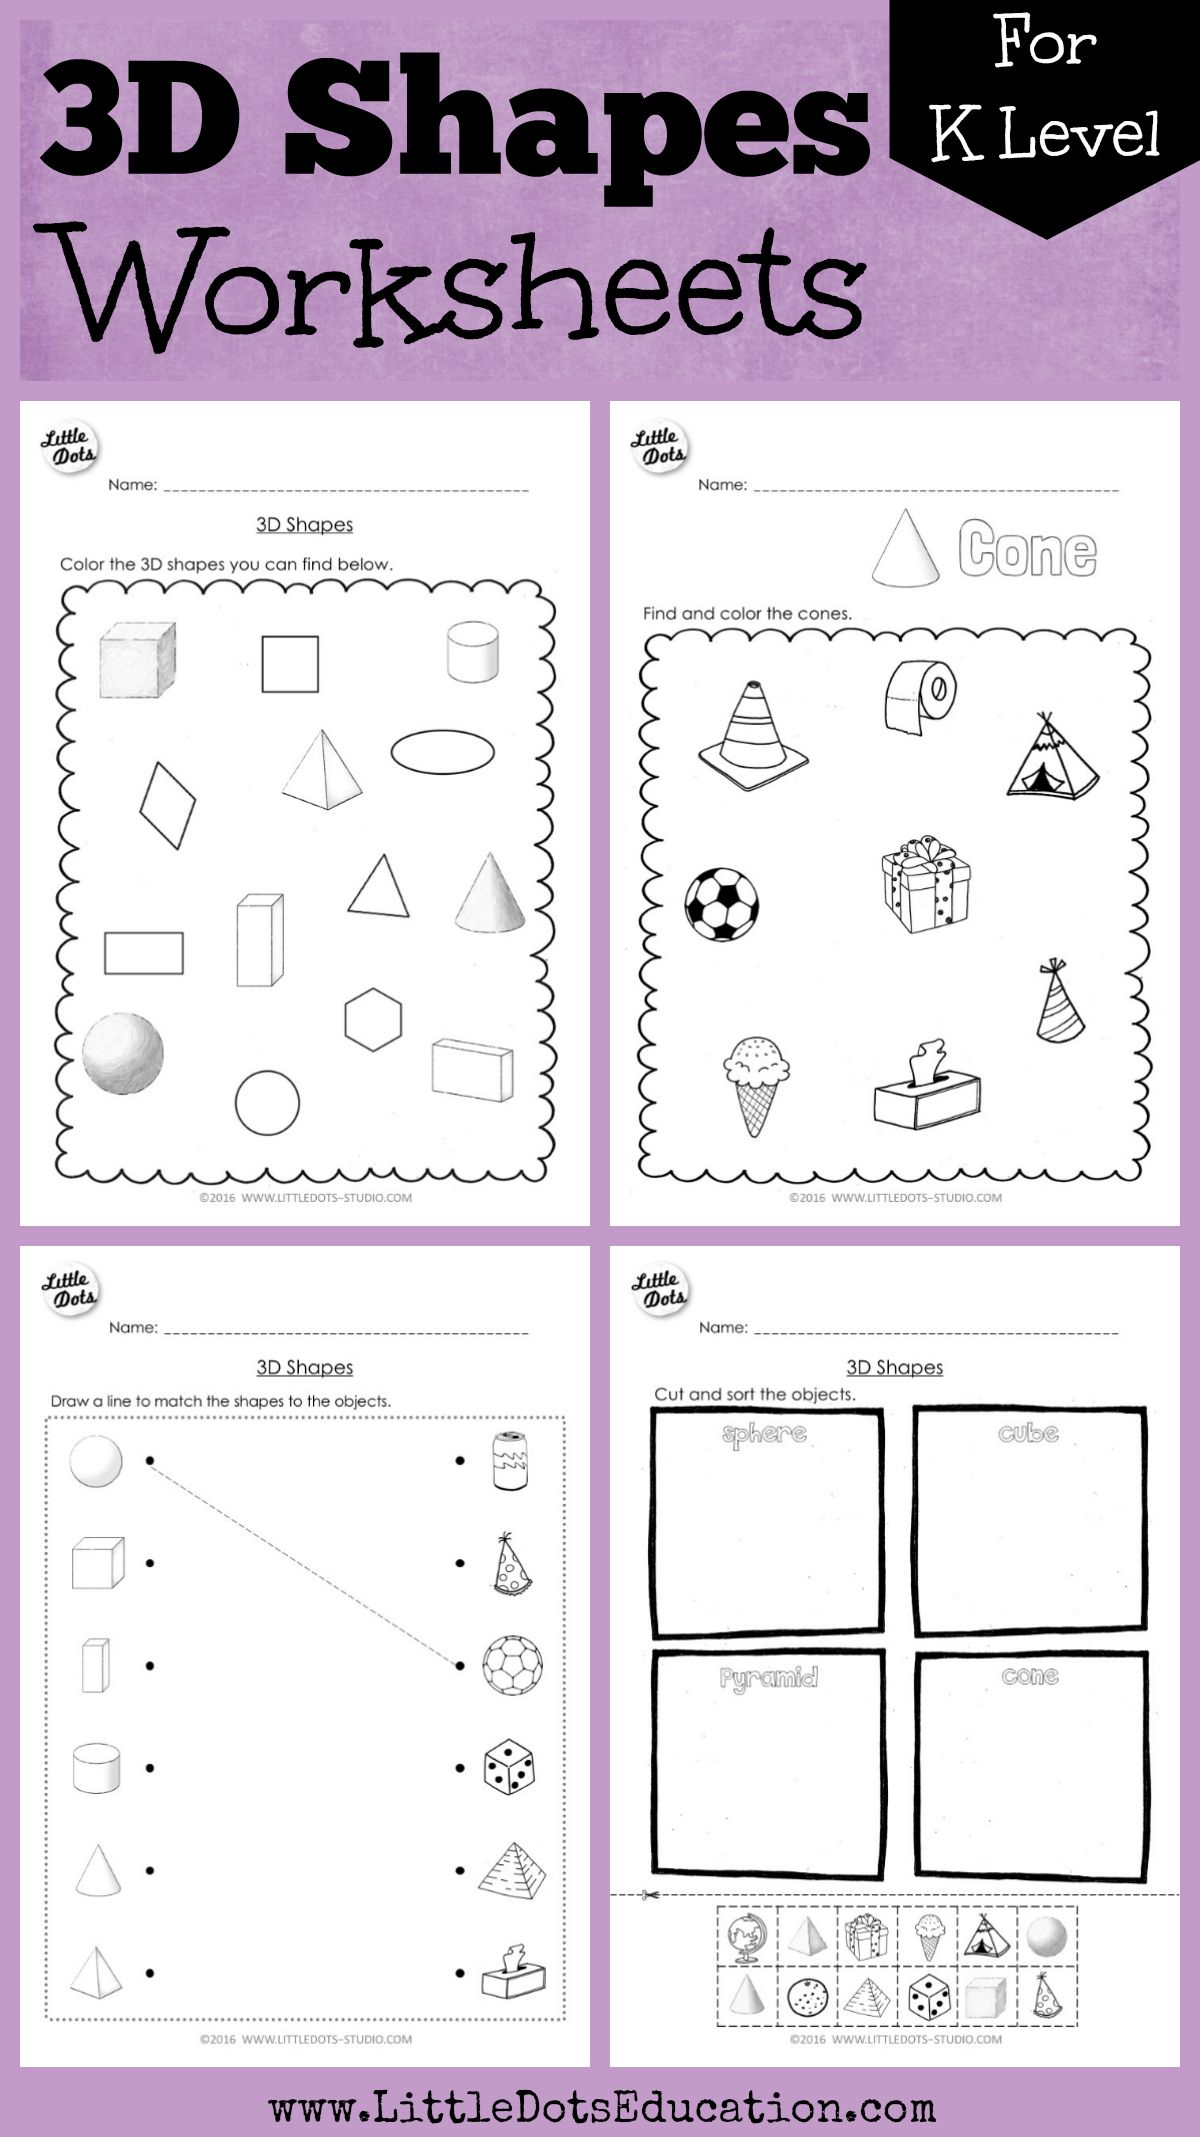 hight resolution of 10 Best Cuboid Worksheets images on Worksheets Ideas